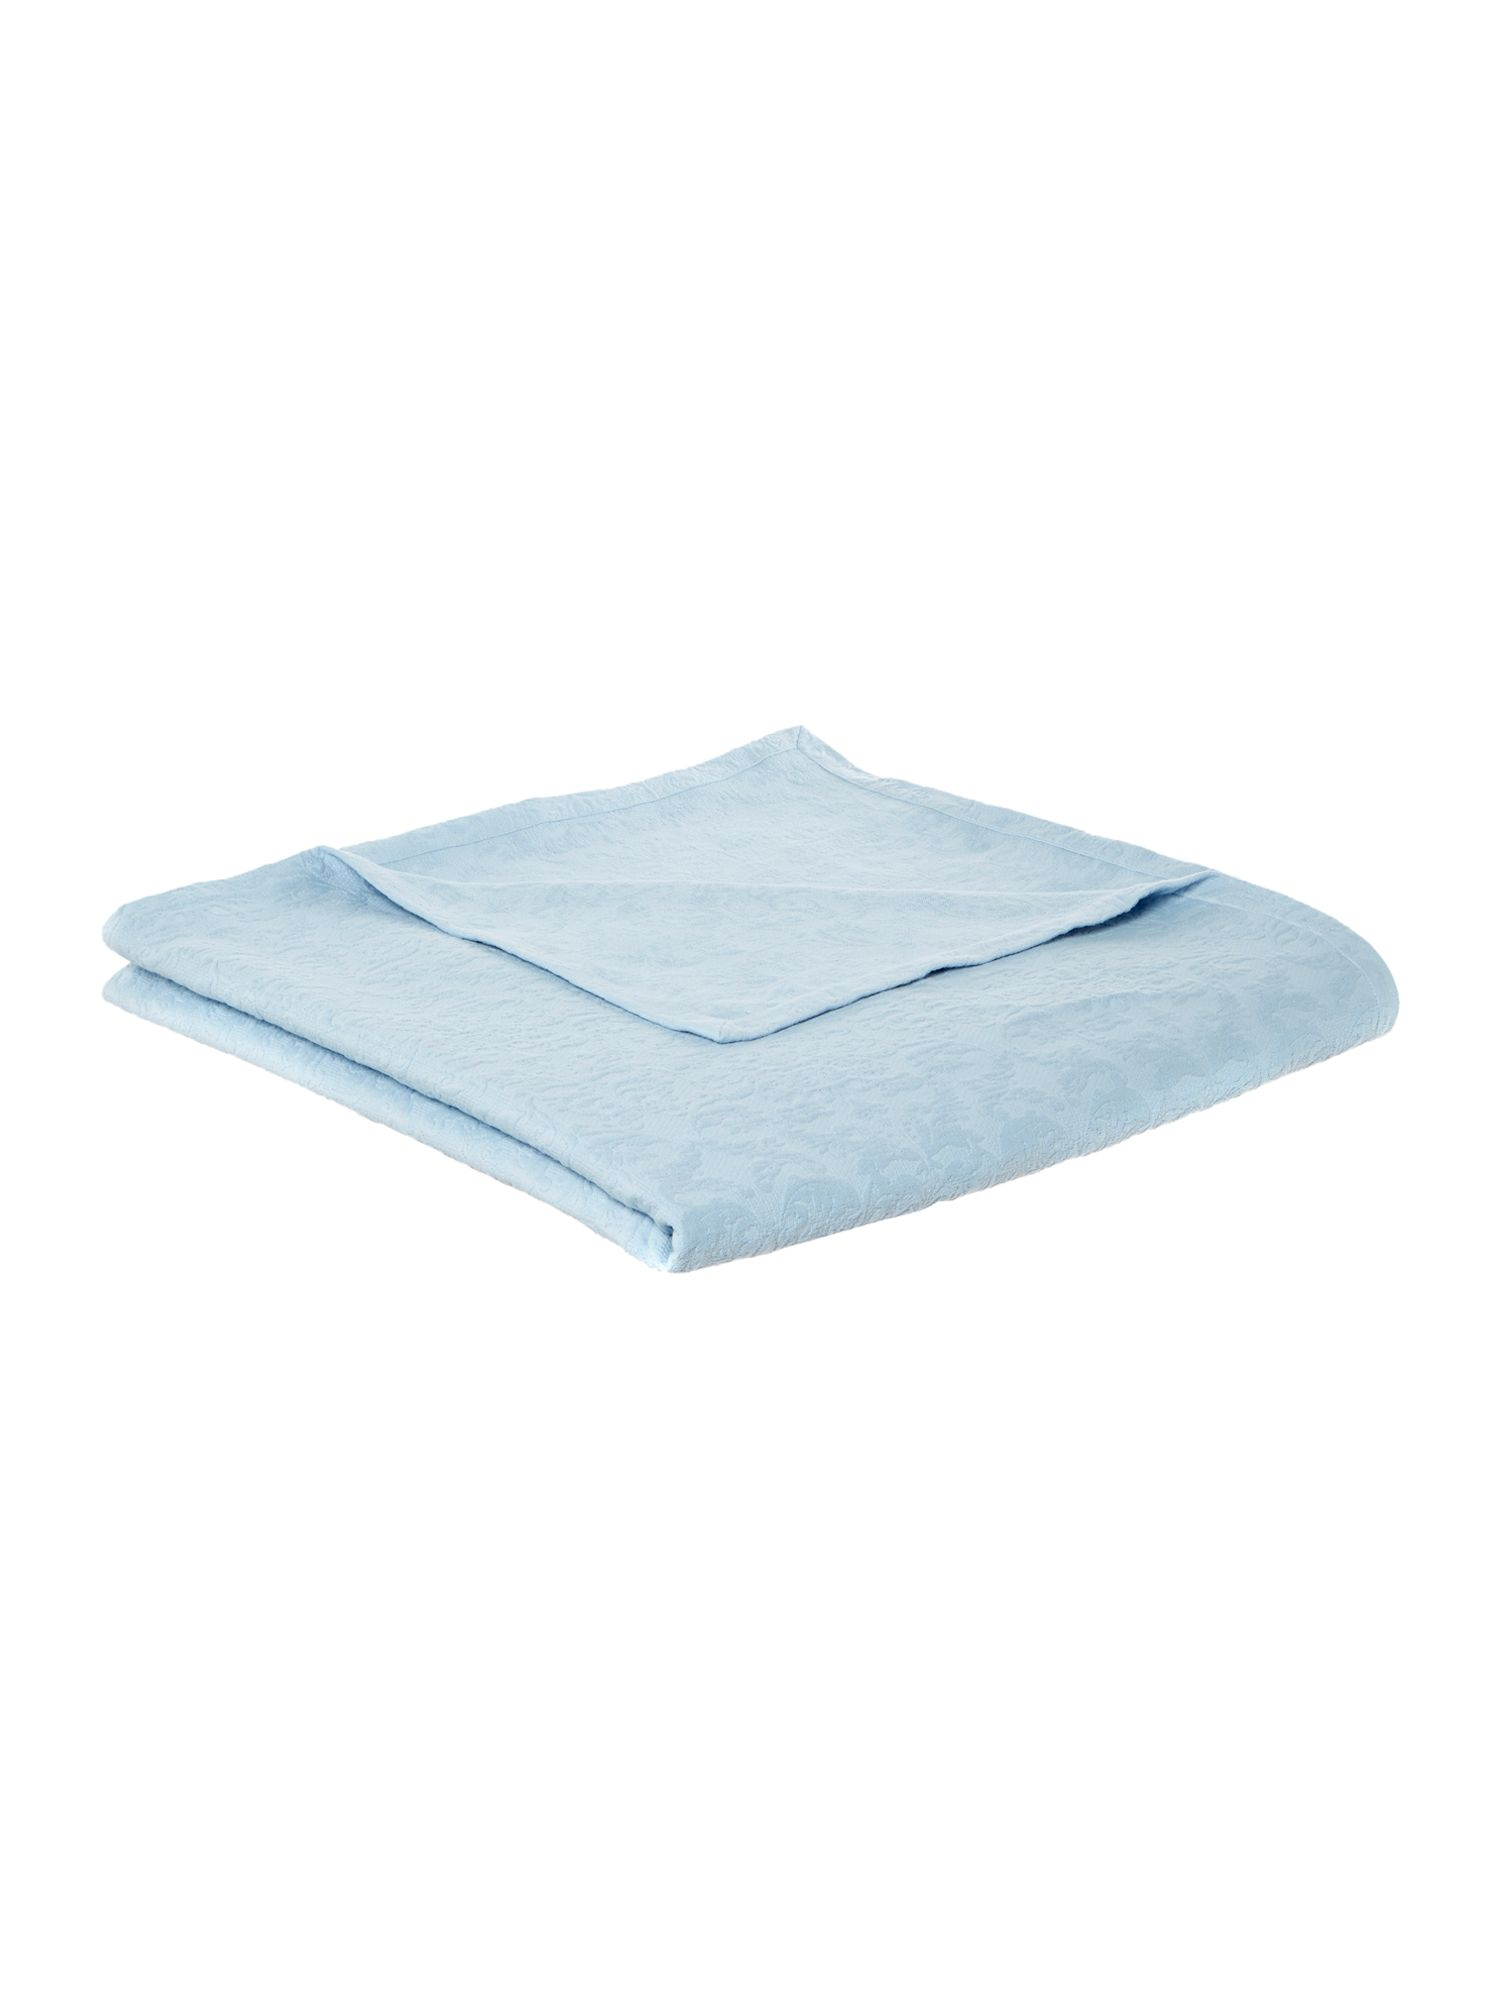 Image of Shabby Chic Classic matelasse bedspread, blue